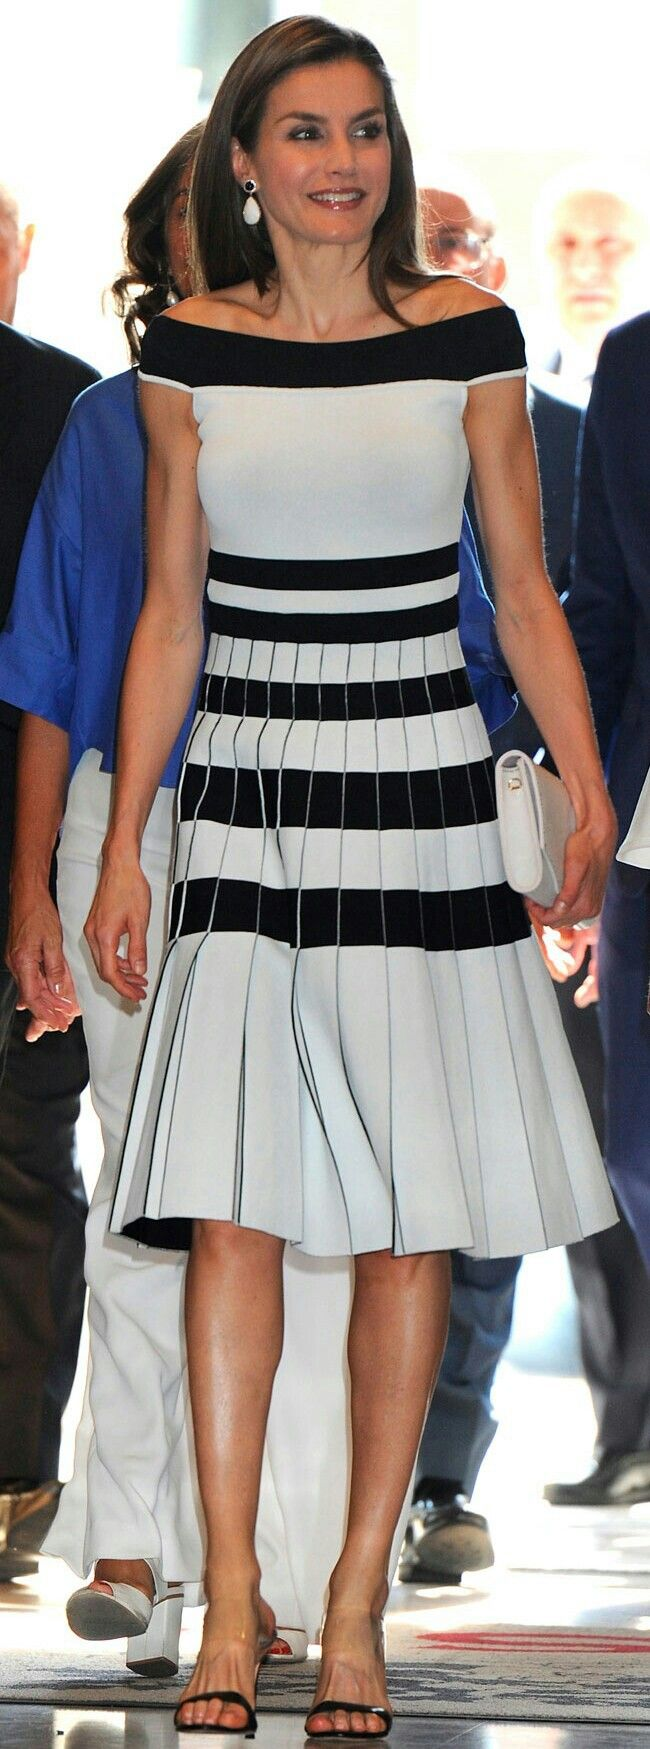 Queen Letizia - White and black striped off-the-shoulder black and white dress by Carolina Herrera - Carolina Herrera black heeled mules - white Felipe Prieto flap leather clutch bag - Coolook'luna' earrings